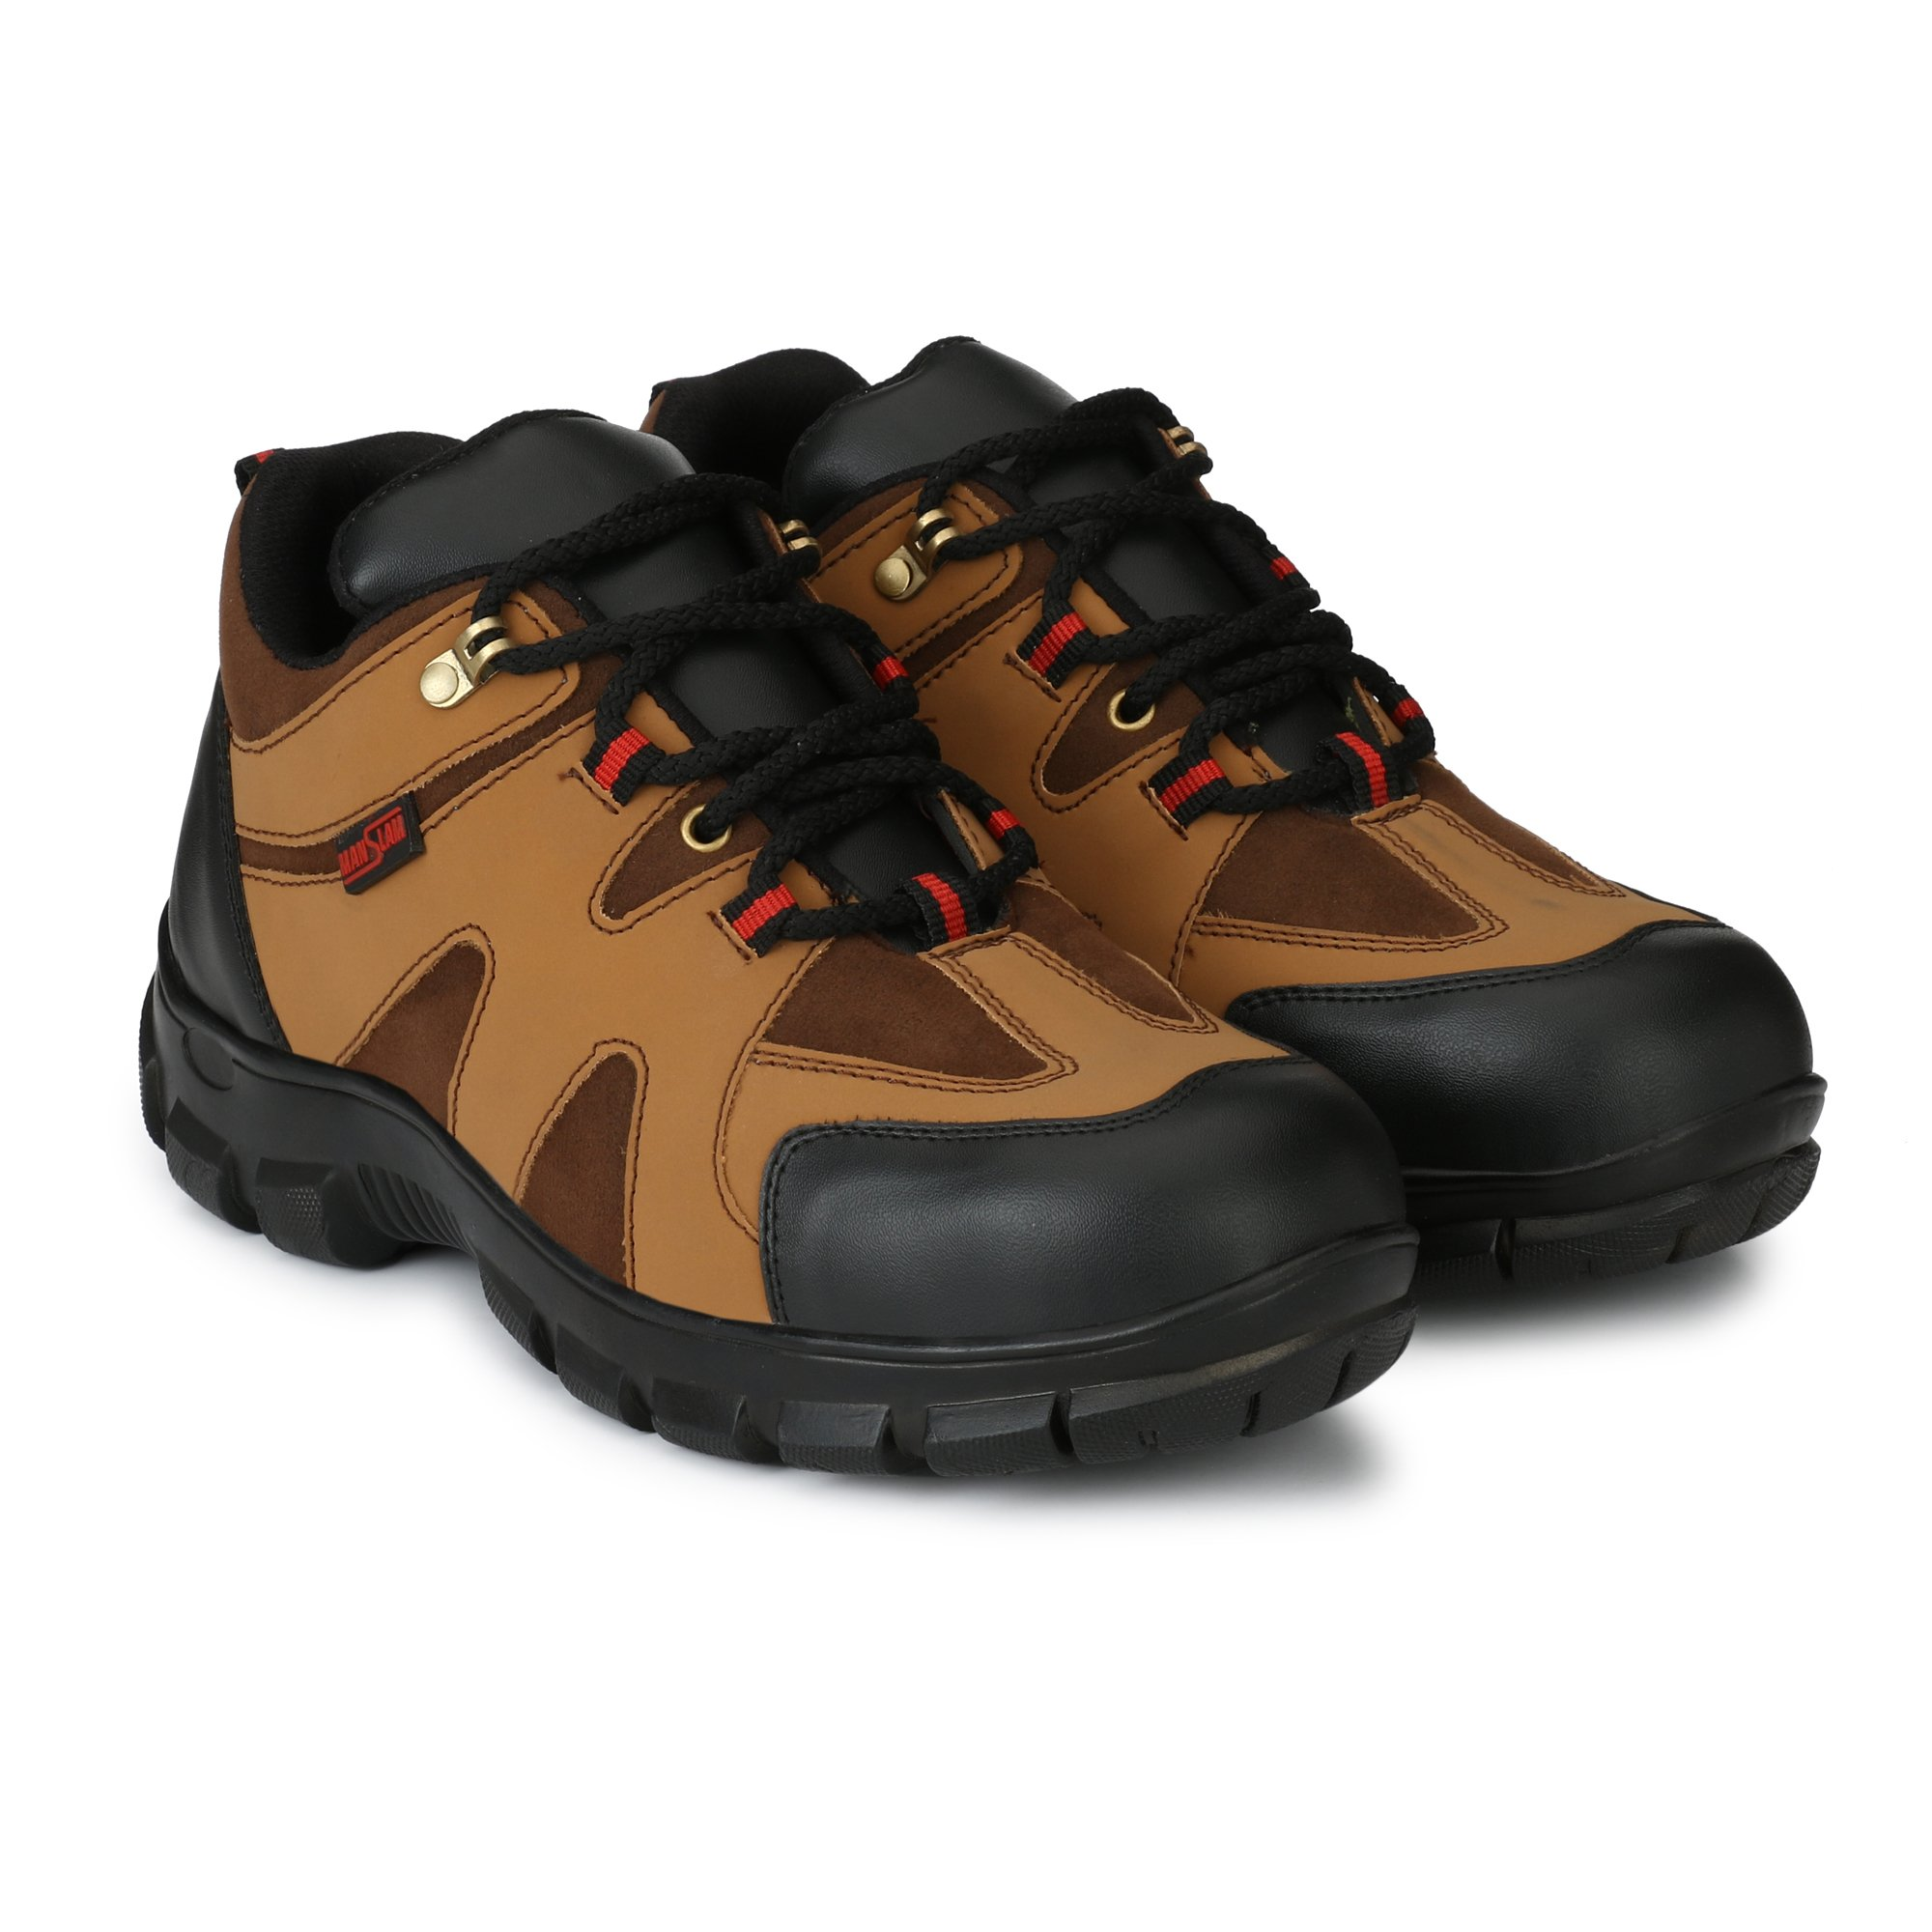 Manslam Synthetic Leather Safety Shoe with Steel Toe (Color - TAN) MLM21 (9) (B07F37QW96) Amazon Price History, Amazon Price Tracker